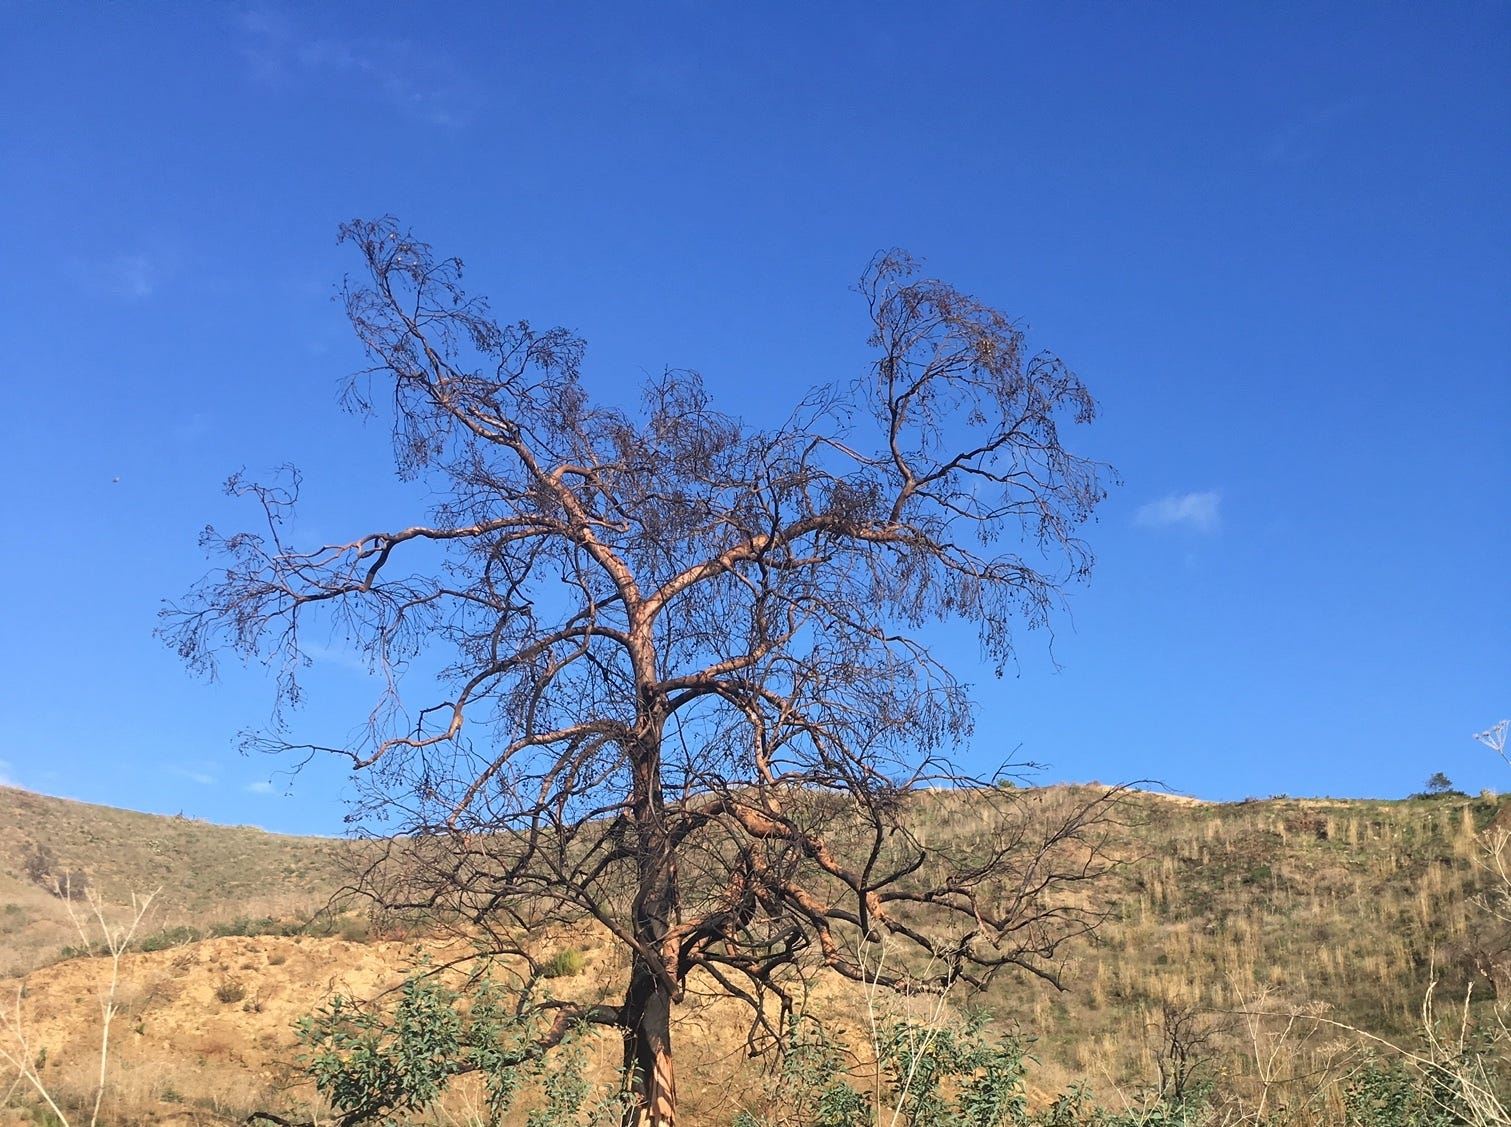 Flowers sprout next to a burned tree in Arroyo Verde Park in Ventura.